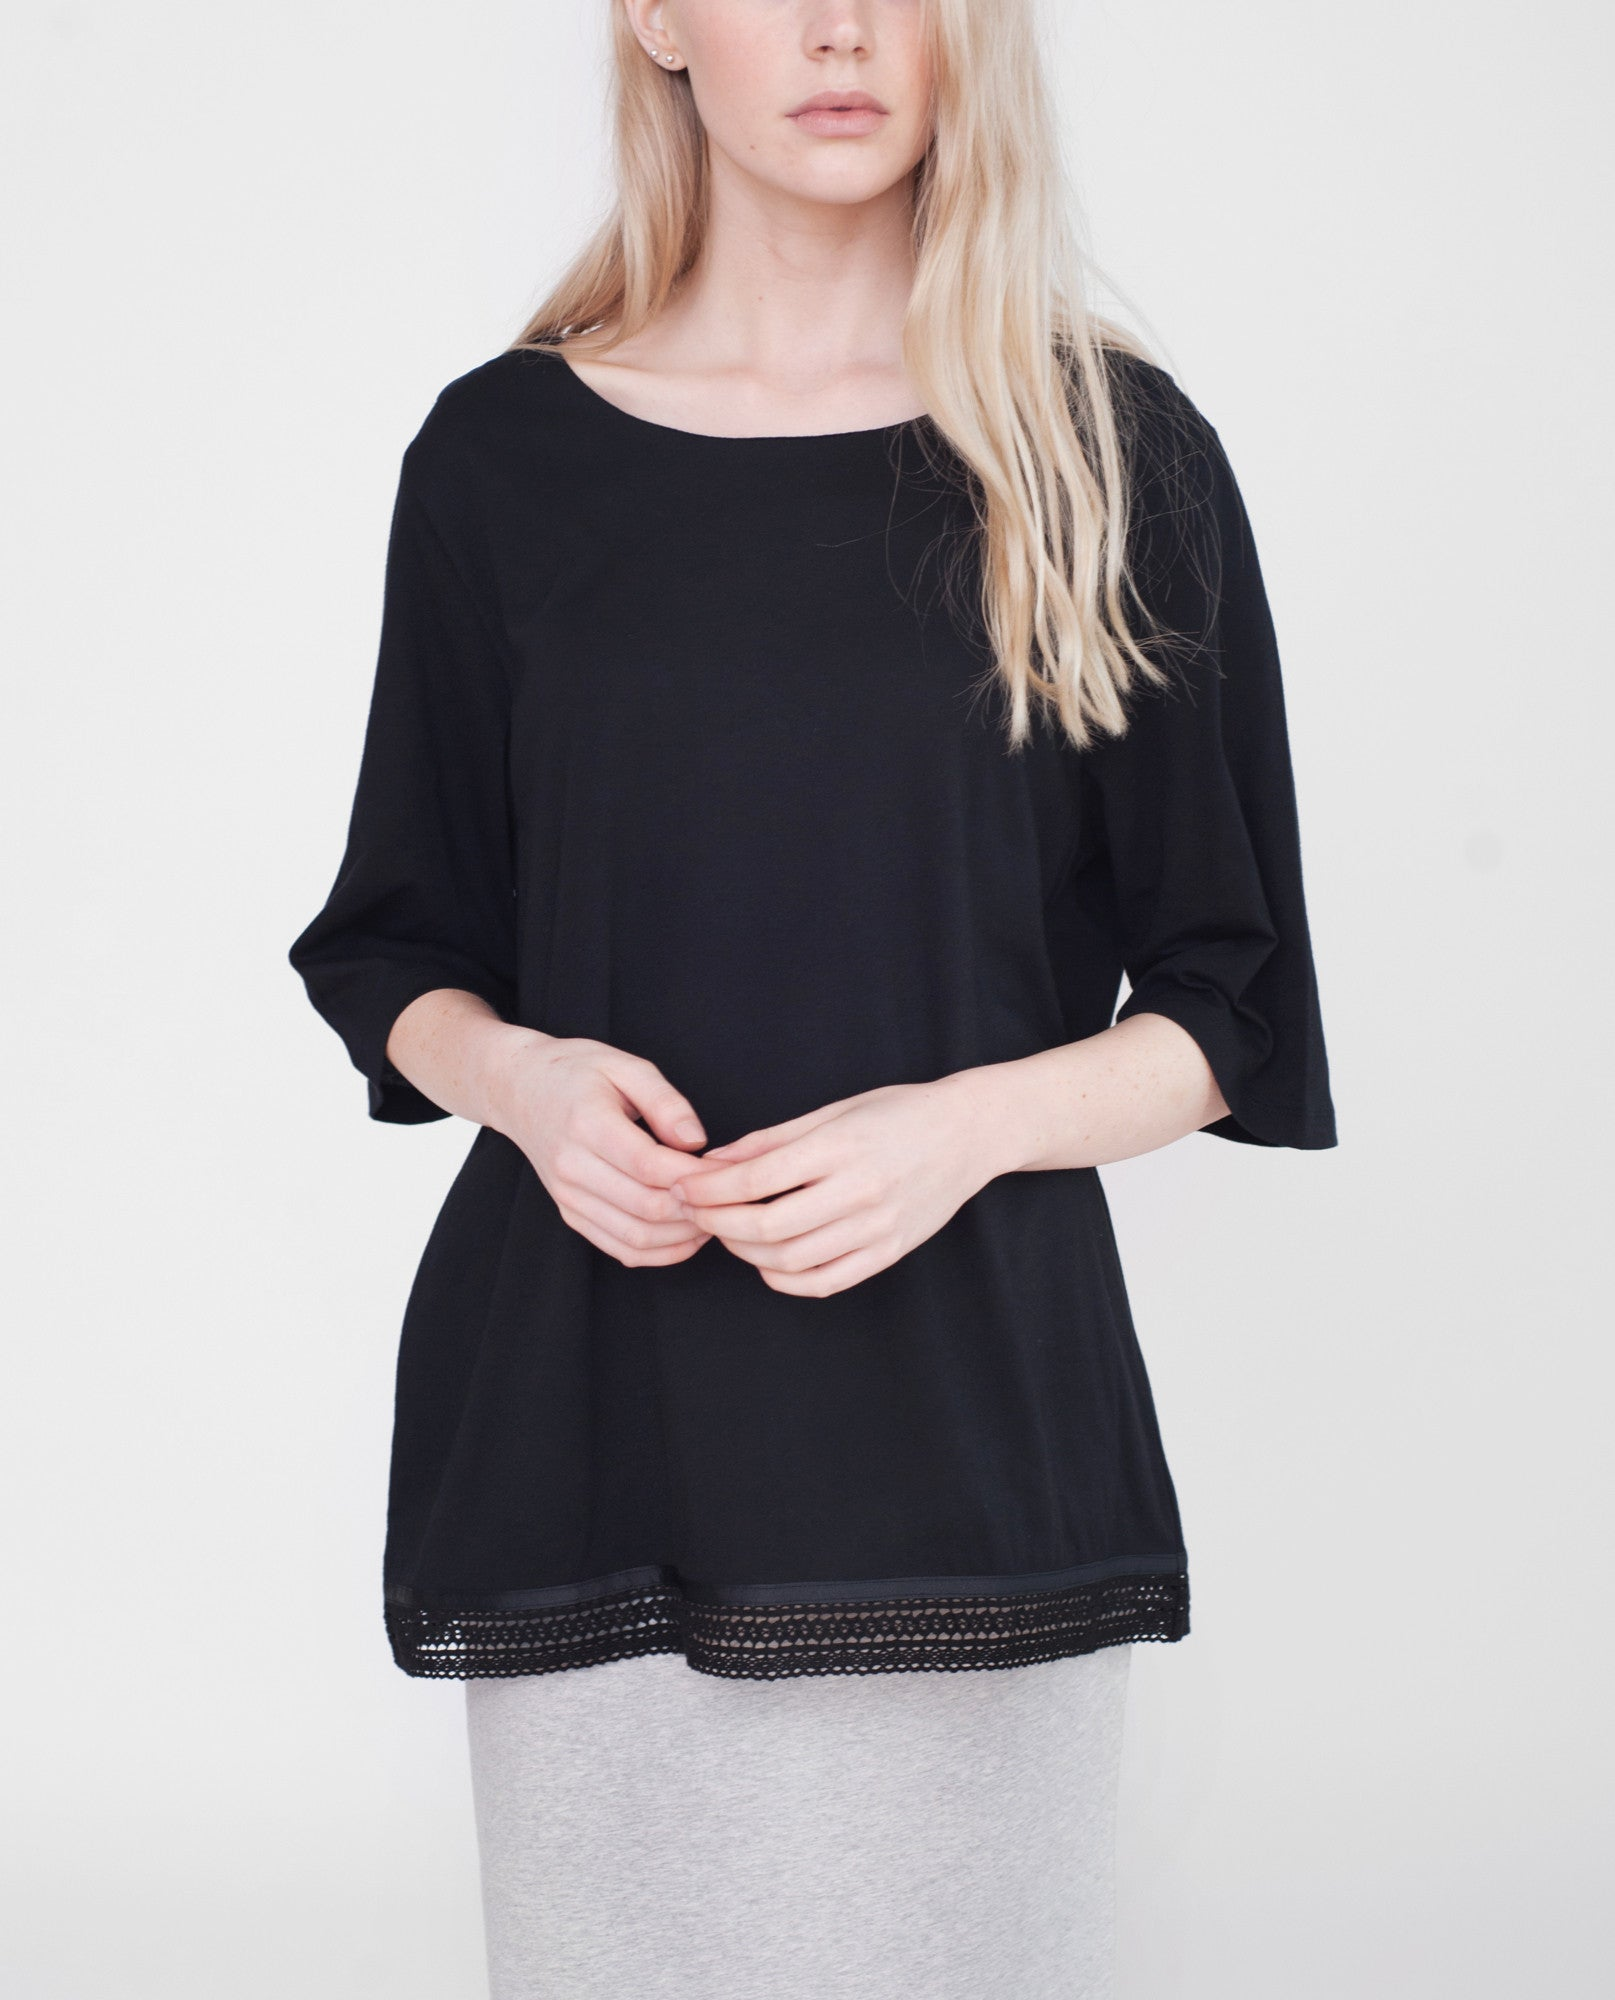 BRIELLE Organic Cotton Top In Black from Beaumont Organic